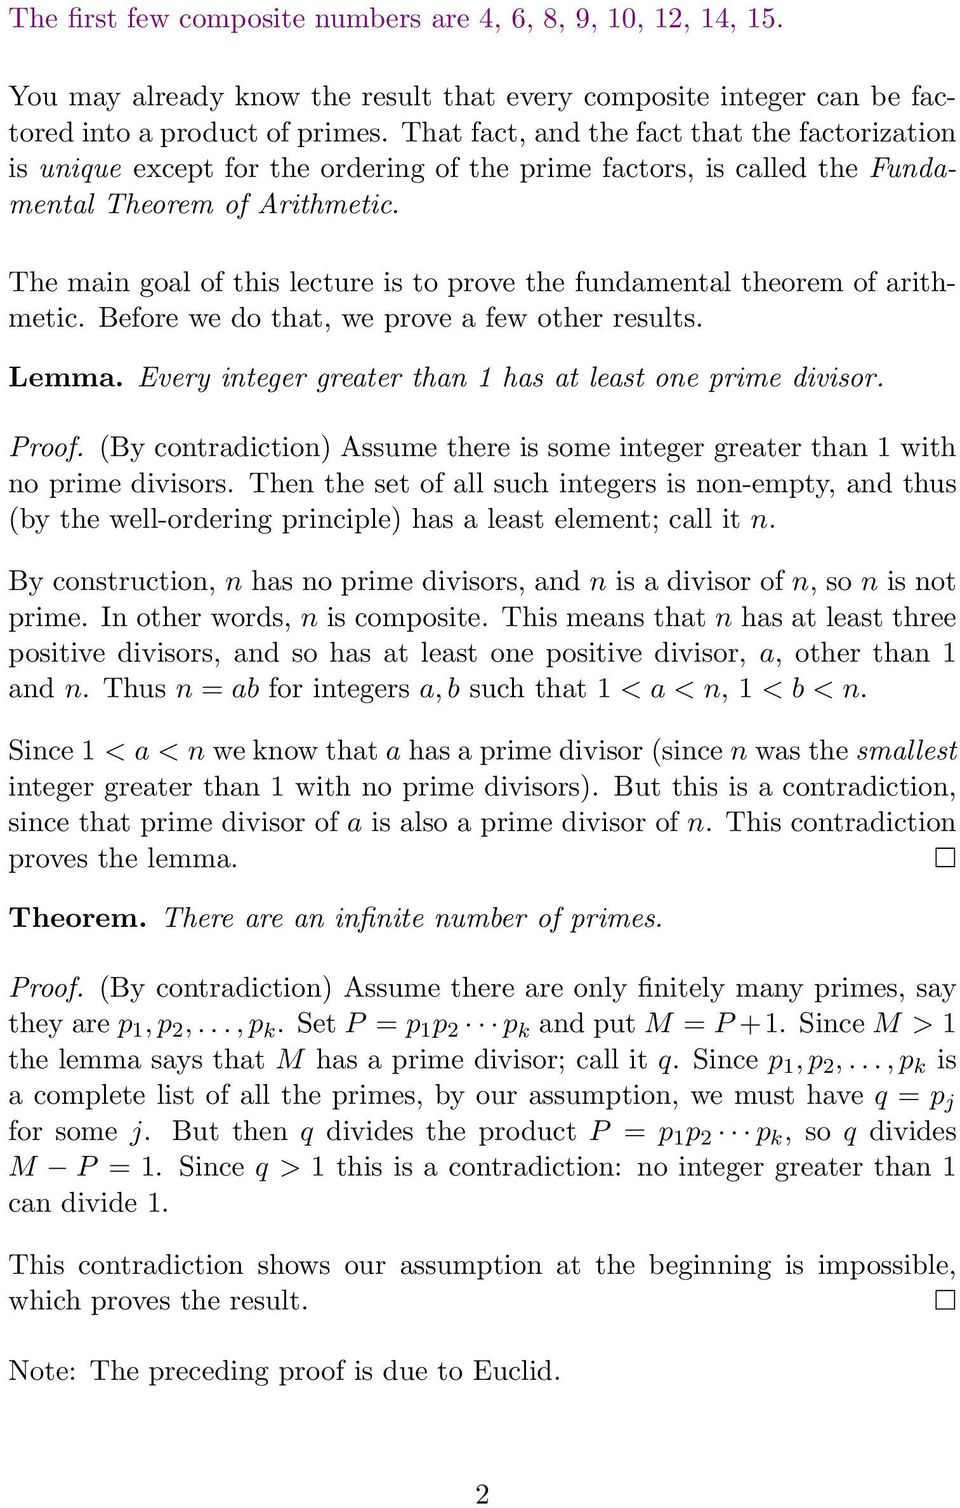 The main goal of this lecture is to prove the fundamental theorem of arithmetic. Before we do that, we prove a few other results. Lemma. Every integer greater than 1 has at least one prime divisor.